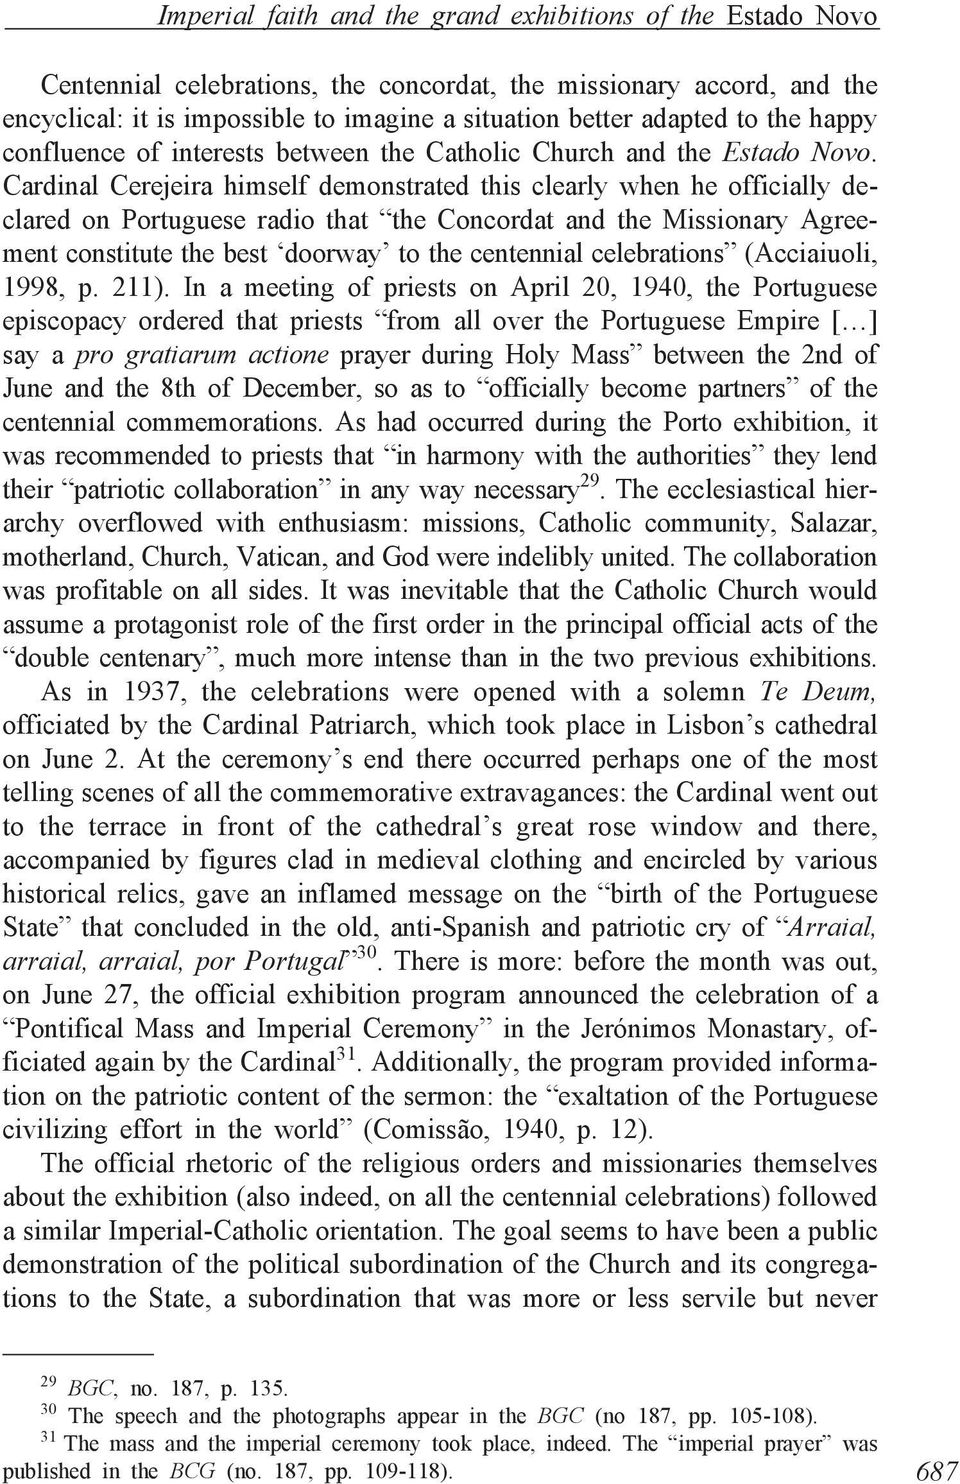 Cardinal Cerejeira himself demonstrated this clearly when he officially declared on Portuguese radio that the Concordat and the Missionary Agreement constitute the best doorway to the centennial